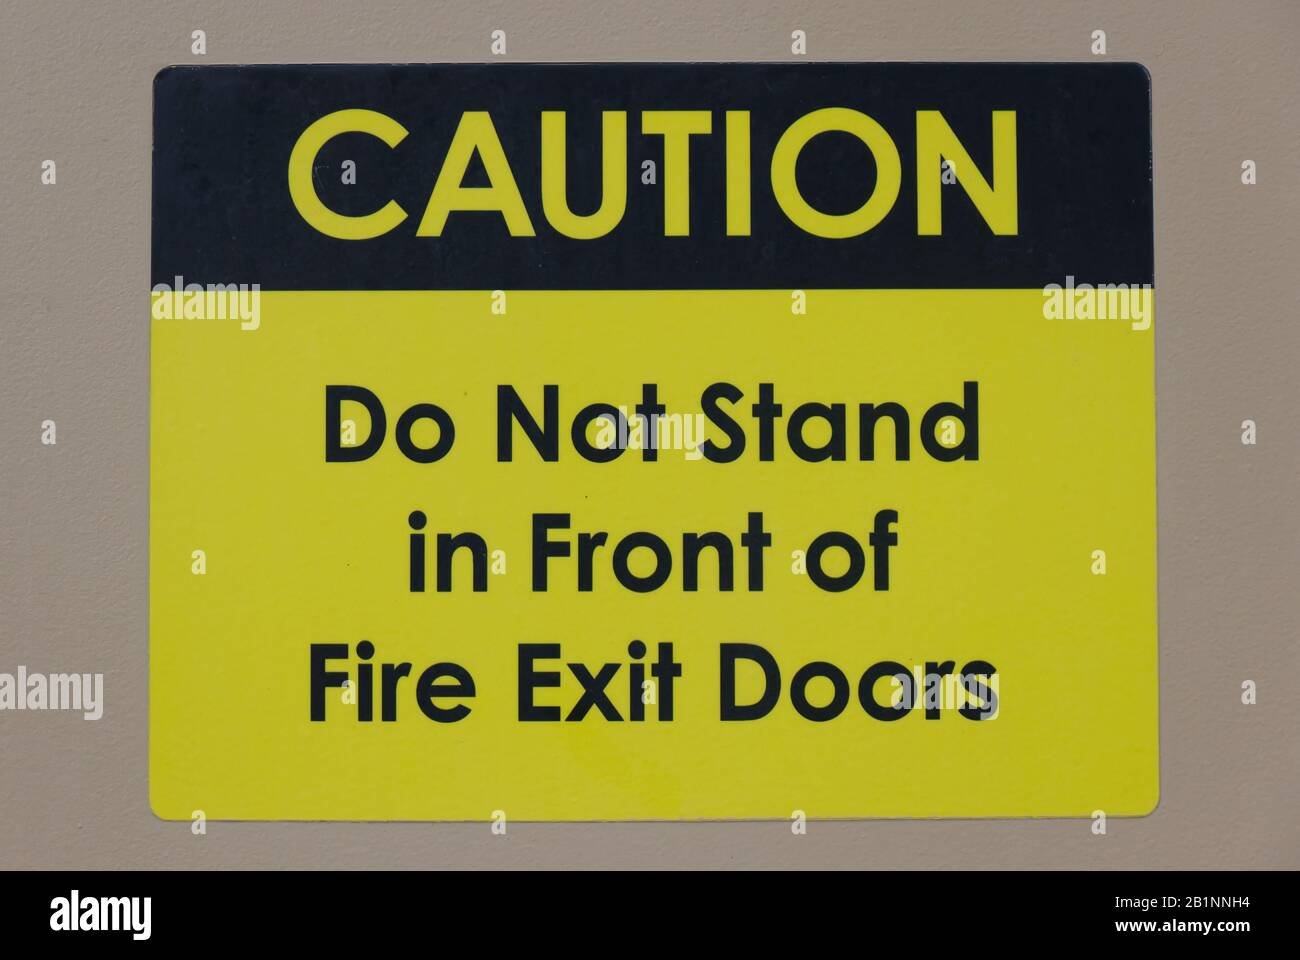 """""""Caution: Do not stand in front of Fire Exit Doors"""" warning text and sign inform to keep the doorway accessible Stock Photo"""